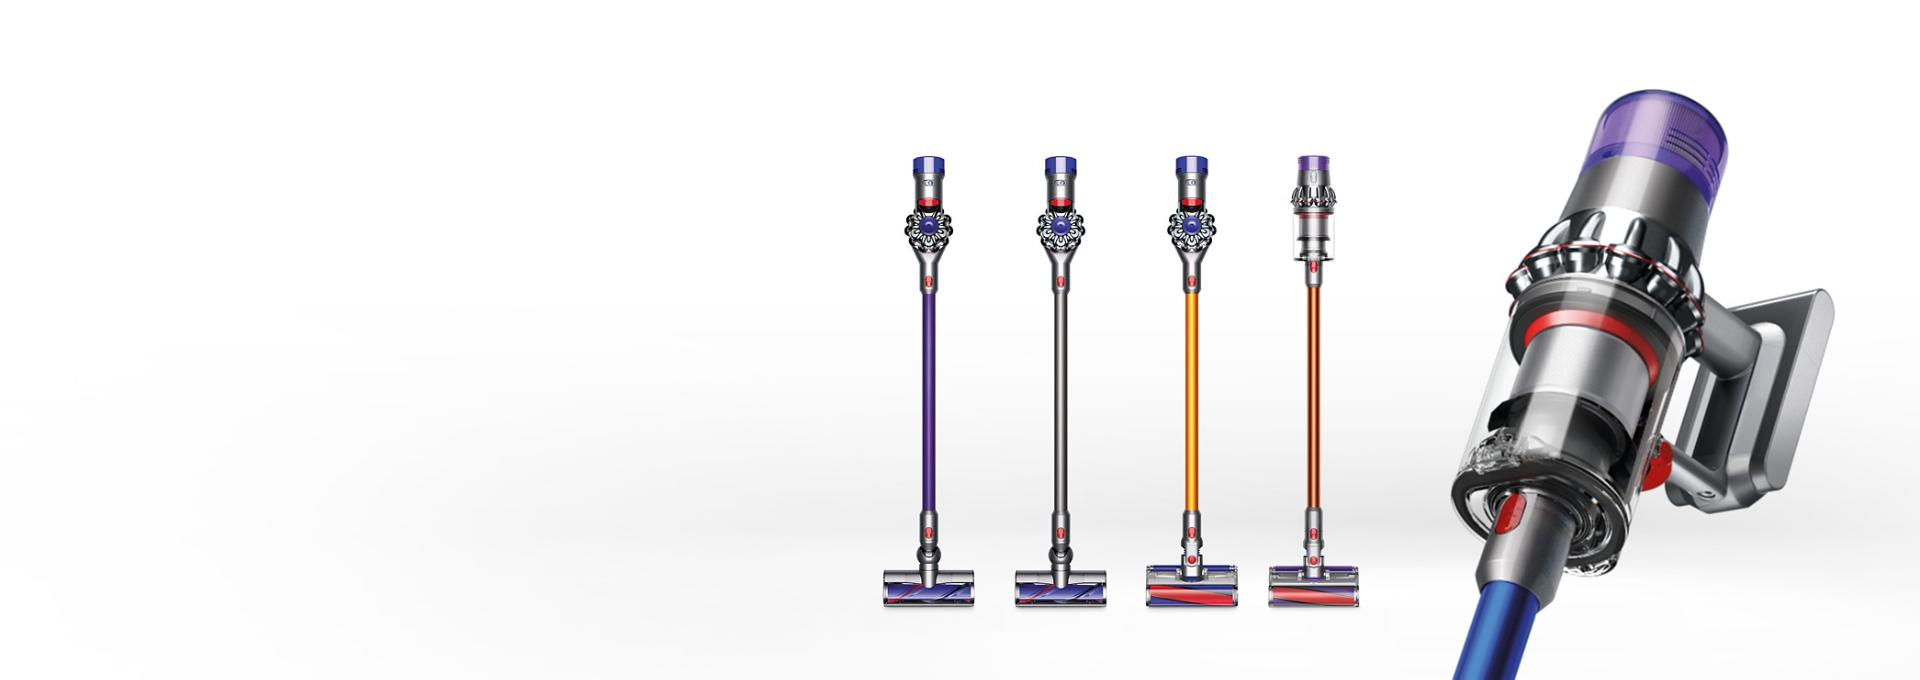 Dyson Cord-free Vacuums